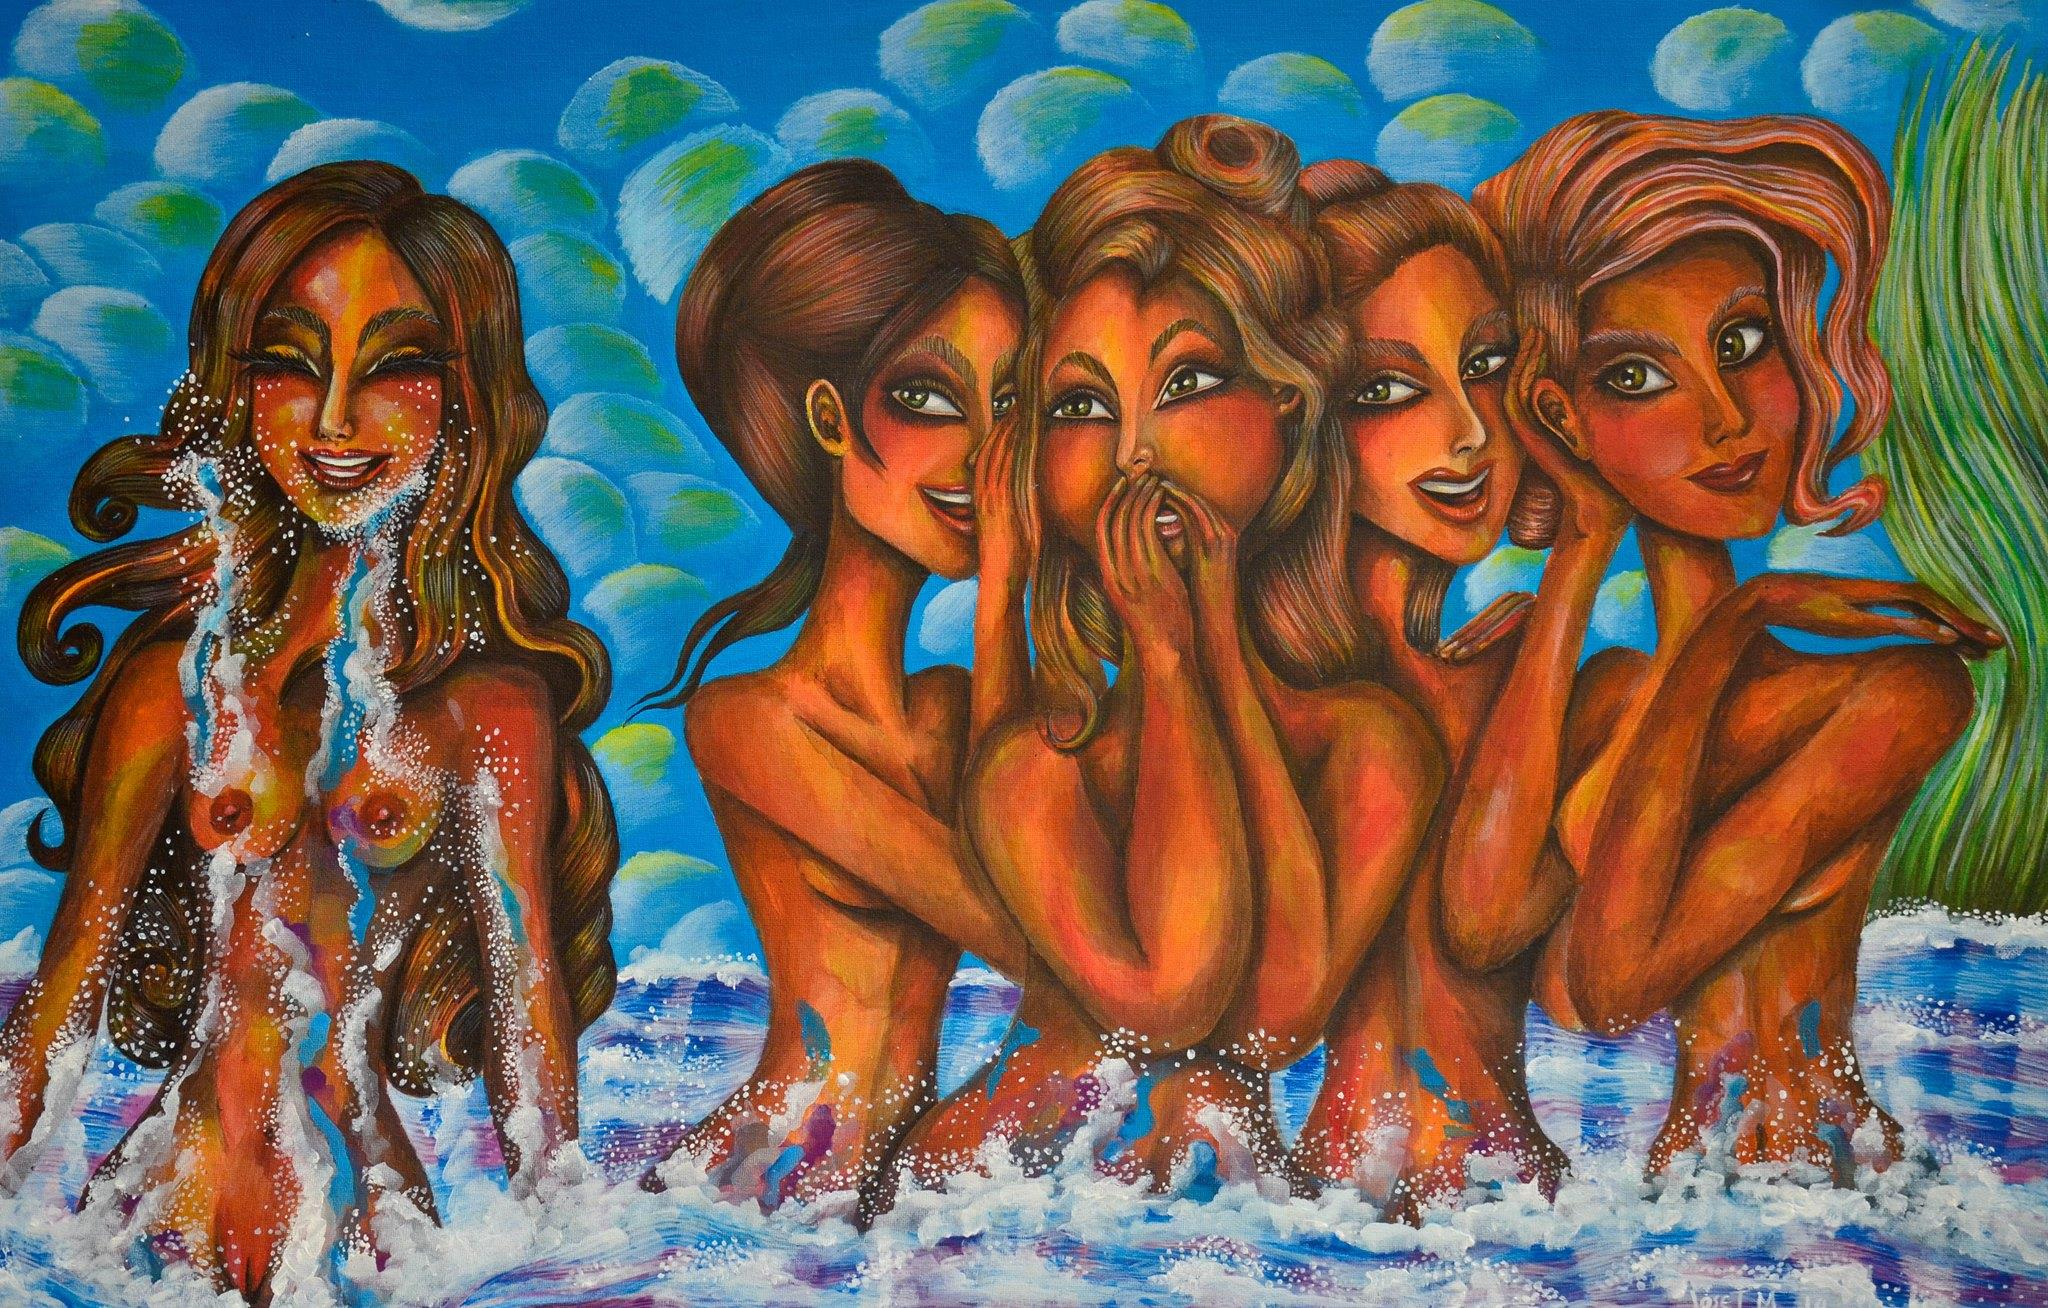 "RUMORS FADE AWAY WITH THE FLOW  Acrylic on Canvas  25"" x 35""  Private Collection  (Panama, Panama)"